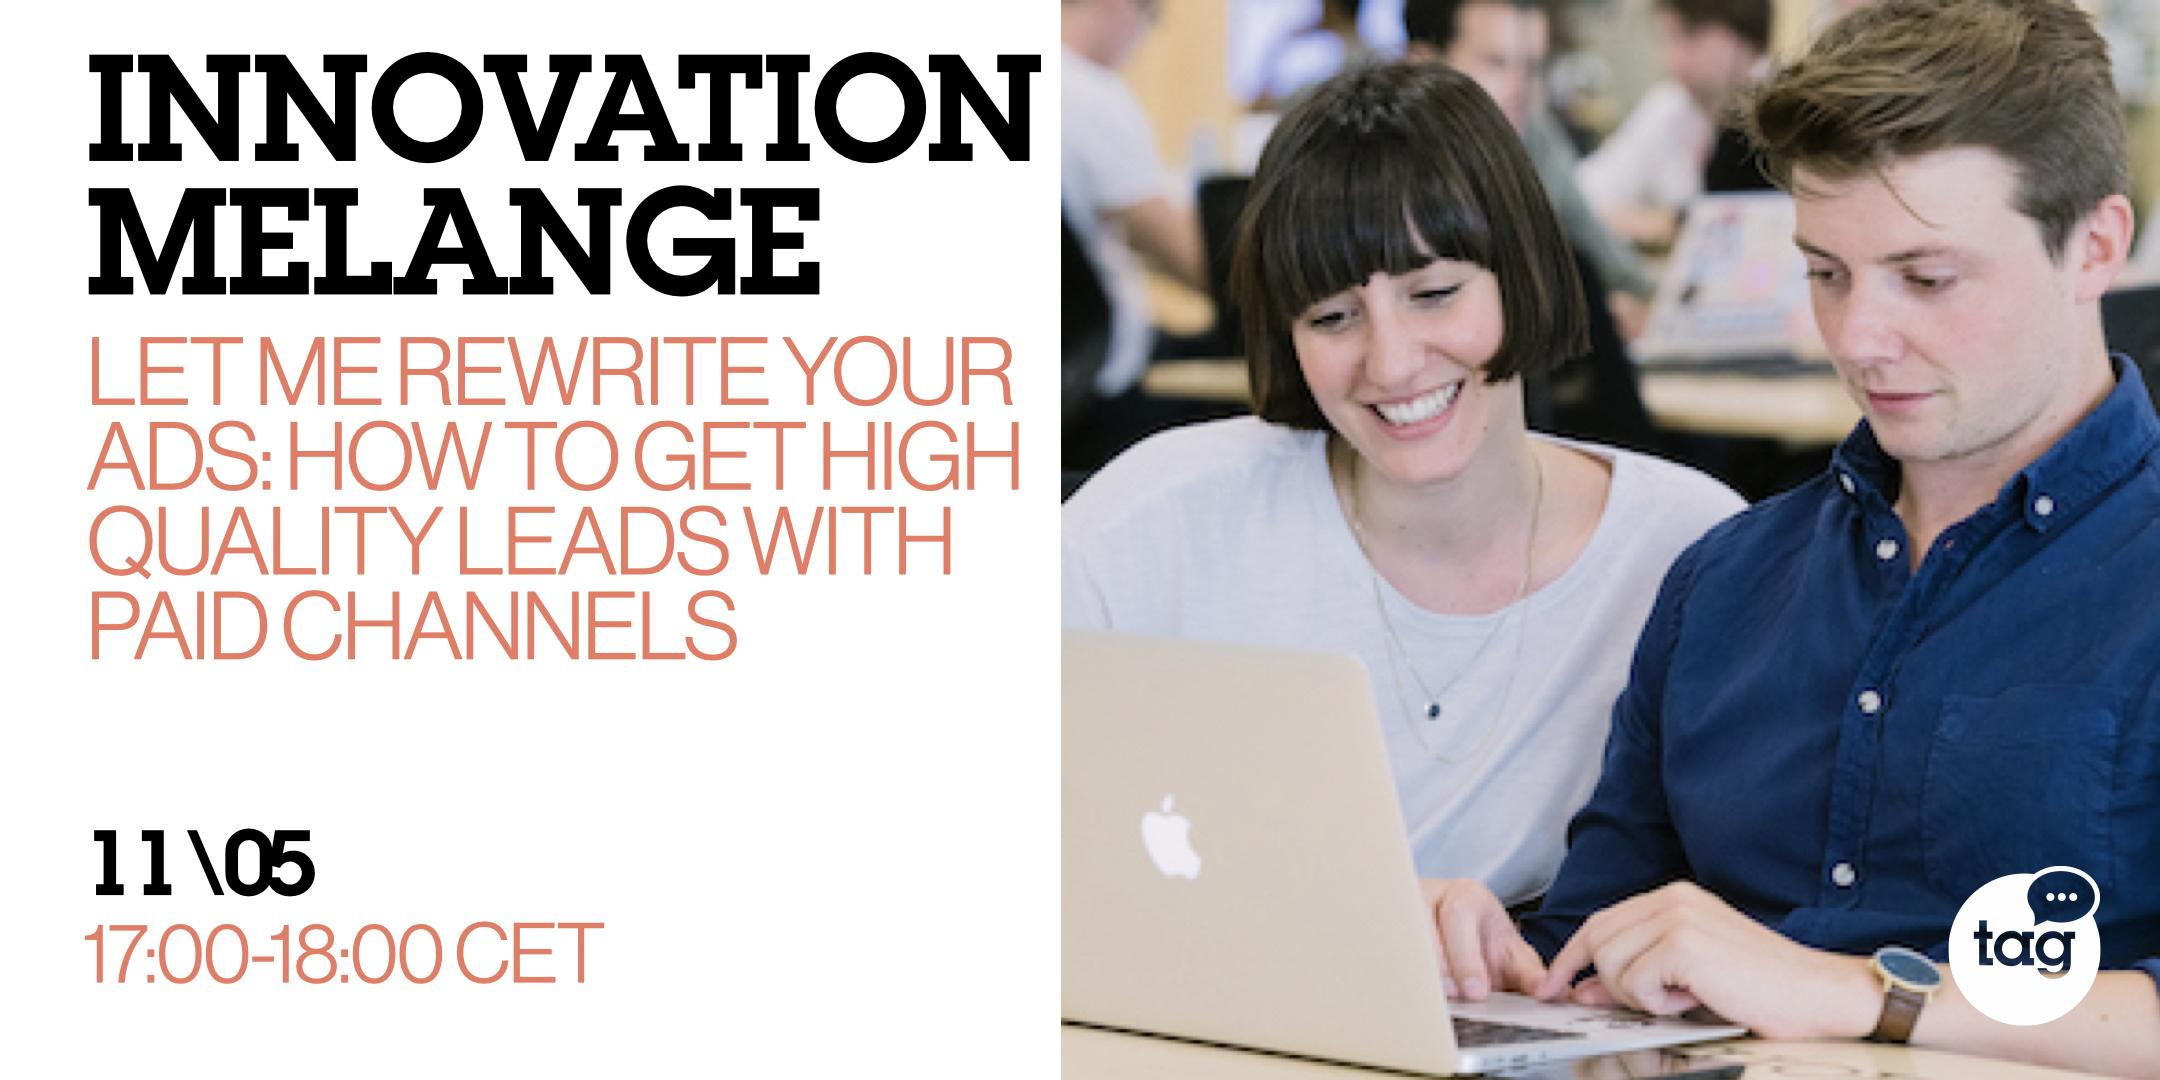 Innovation Melange: Let me rewrite your ads to improve the lead quality